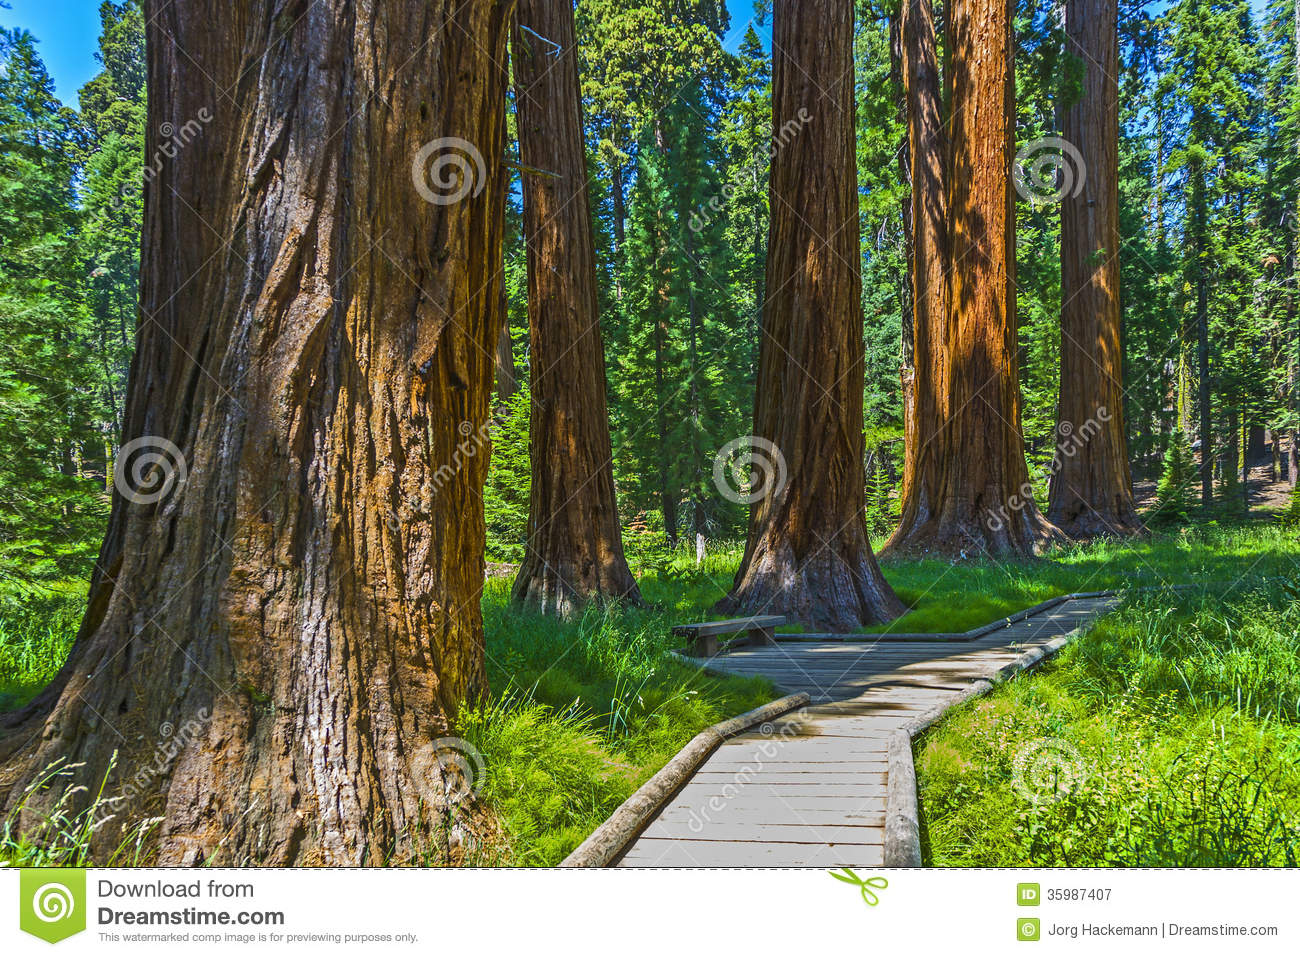 free online personals in sequoia national park Our site is the worlds free online personals and dating service  naked women in sequoia national park california.